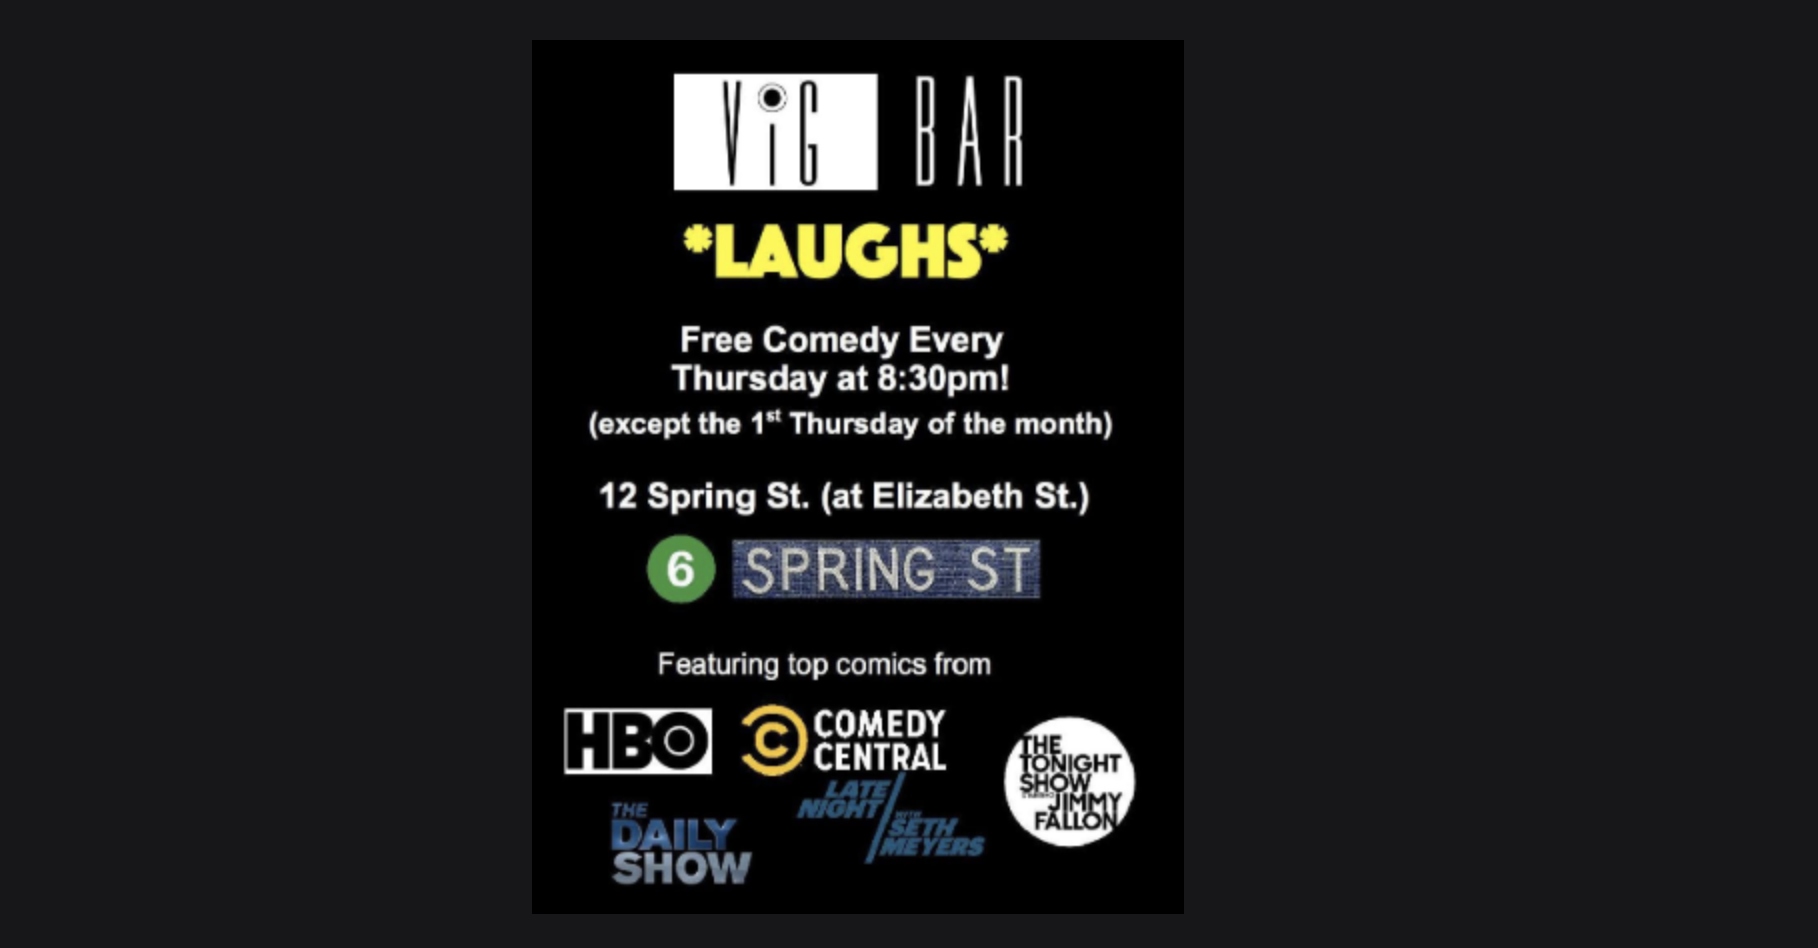 Vig Bar Laughs - A Free Weekly Comedy Show!